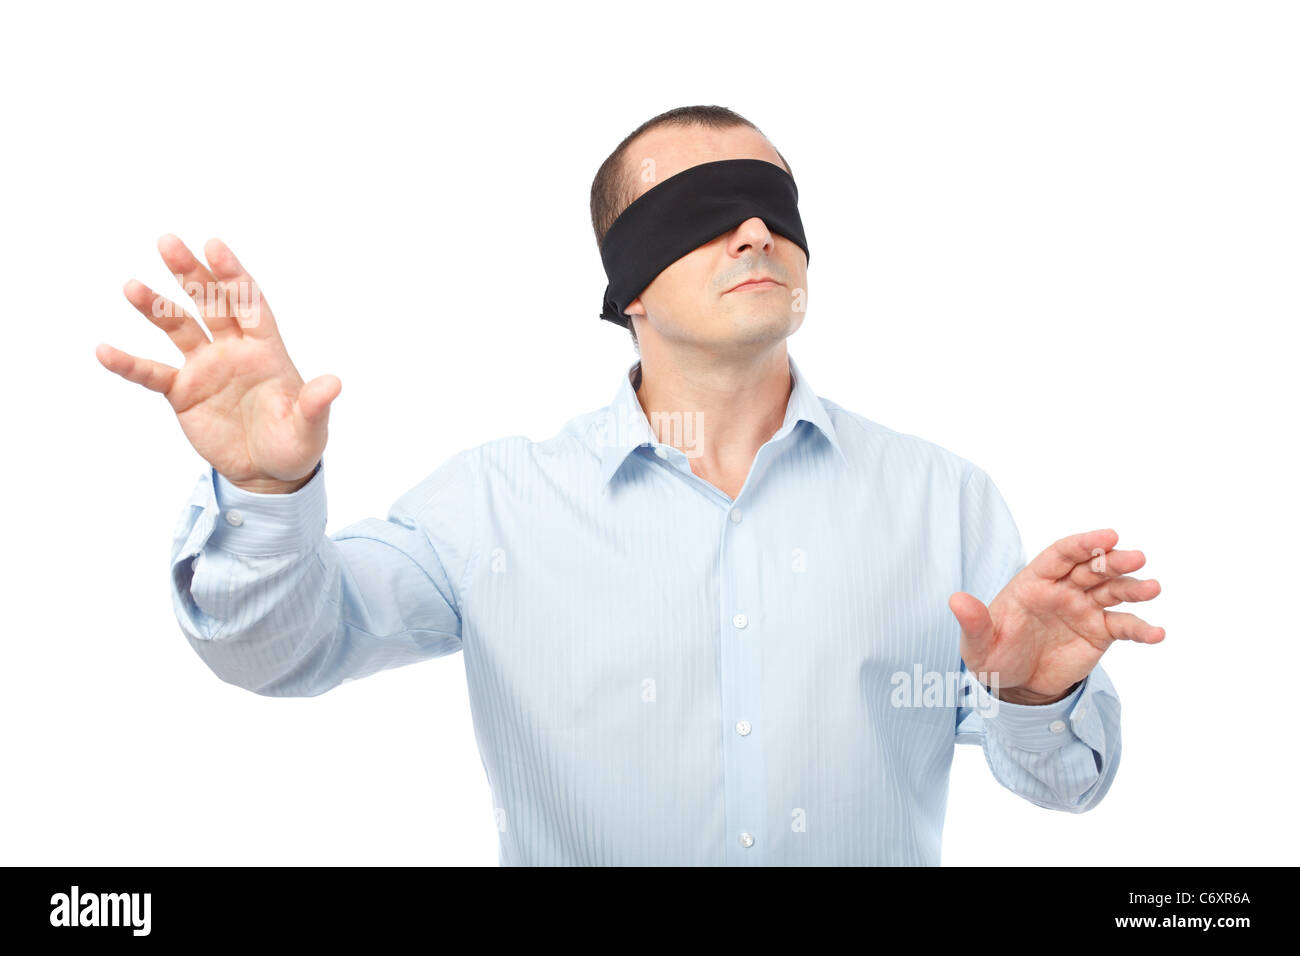 businessman-blindfolded-stretching-his-a